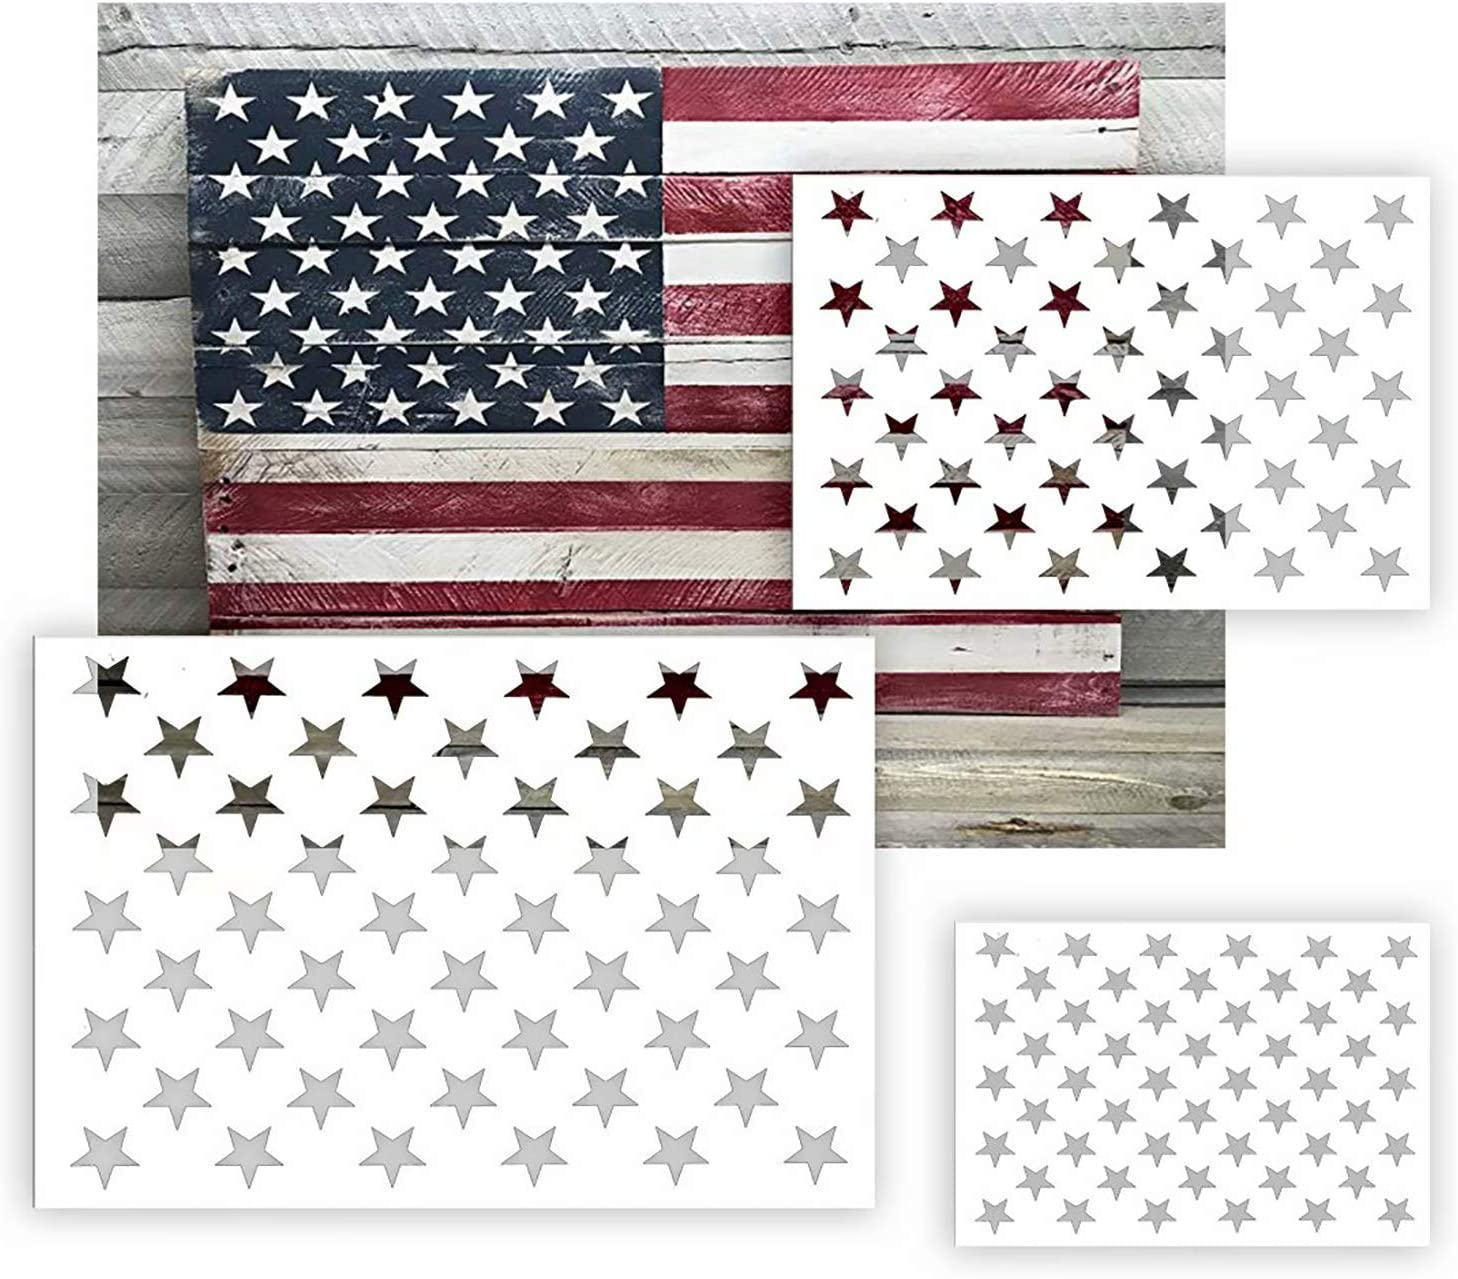 American Flag 50 Star Stencil Template for Painting on Wood, Fabric, Paper, Airbrush, Glass and Wall Art, Reusable Starfield Stencil 6 Pack(3 Sizes)